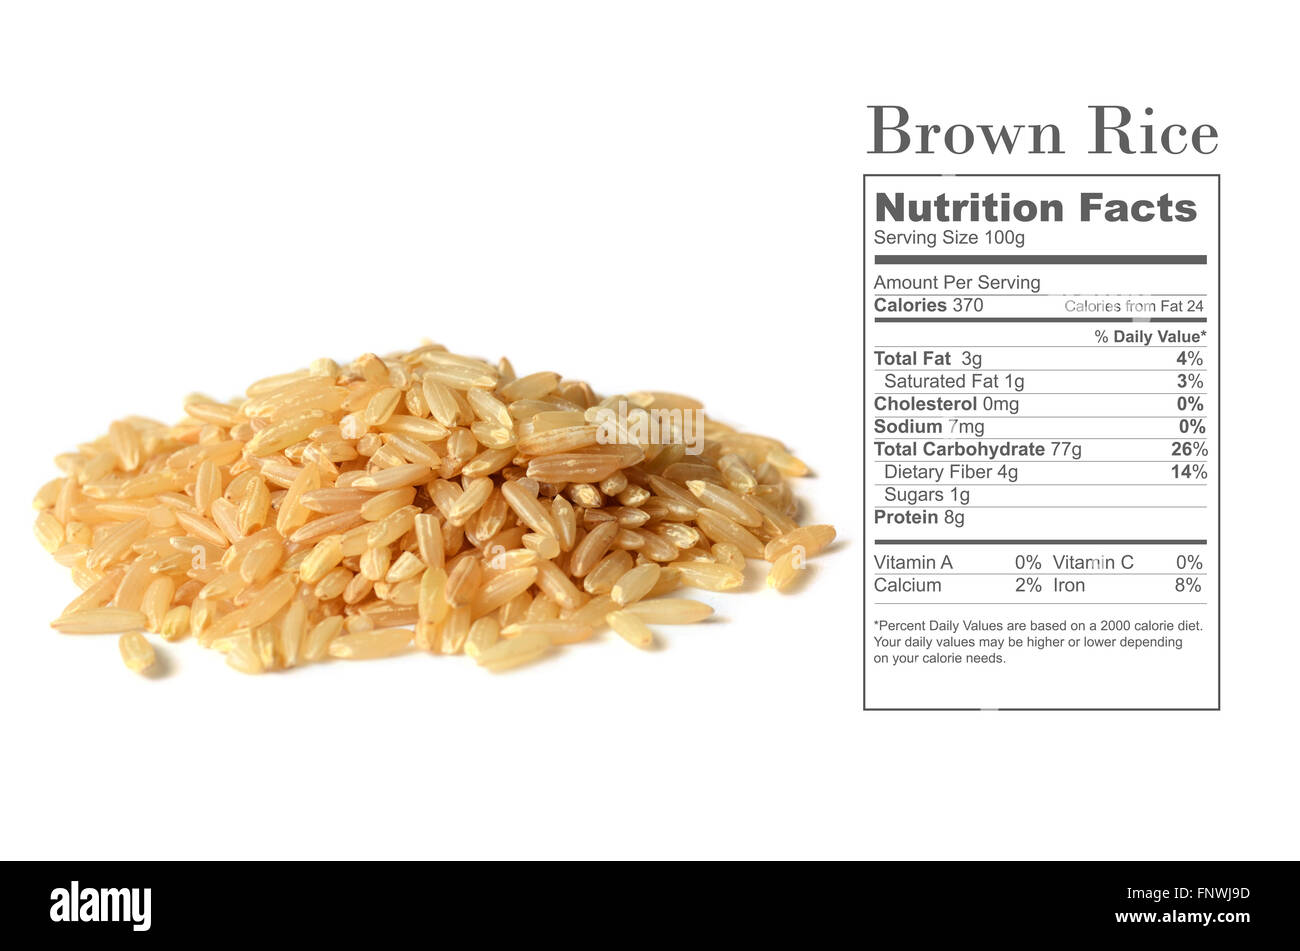 Healthy Brown Rice Uncooked With Nutrition Facts On White Background Stock Photo Alamy